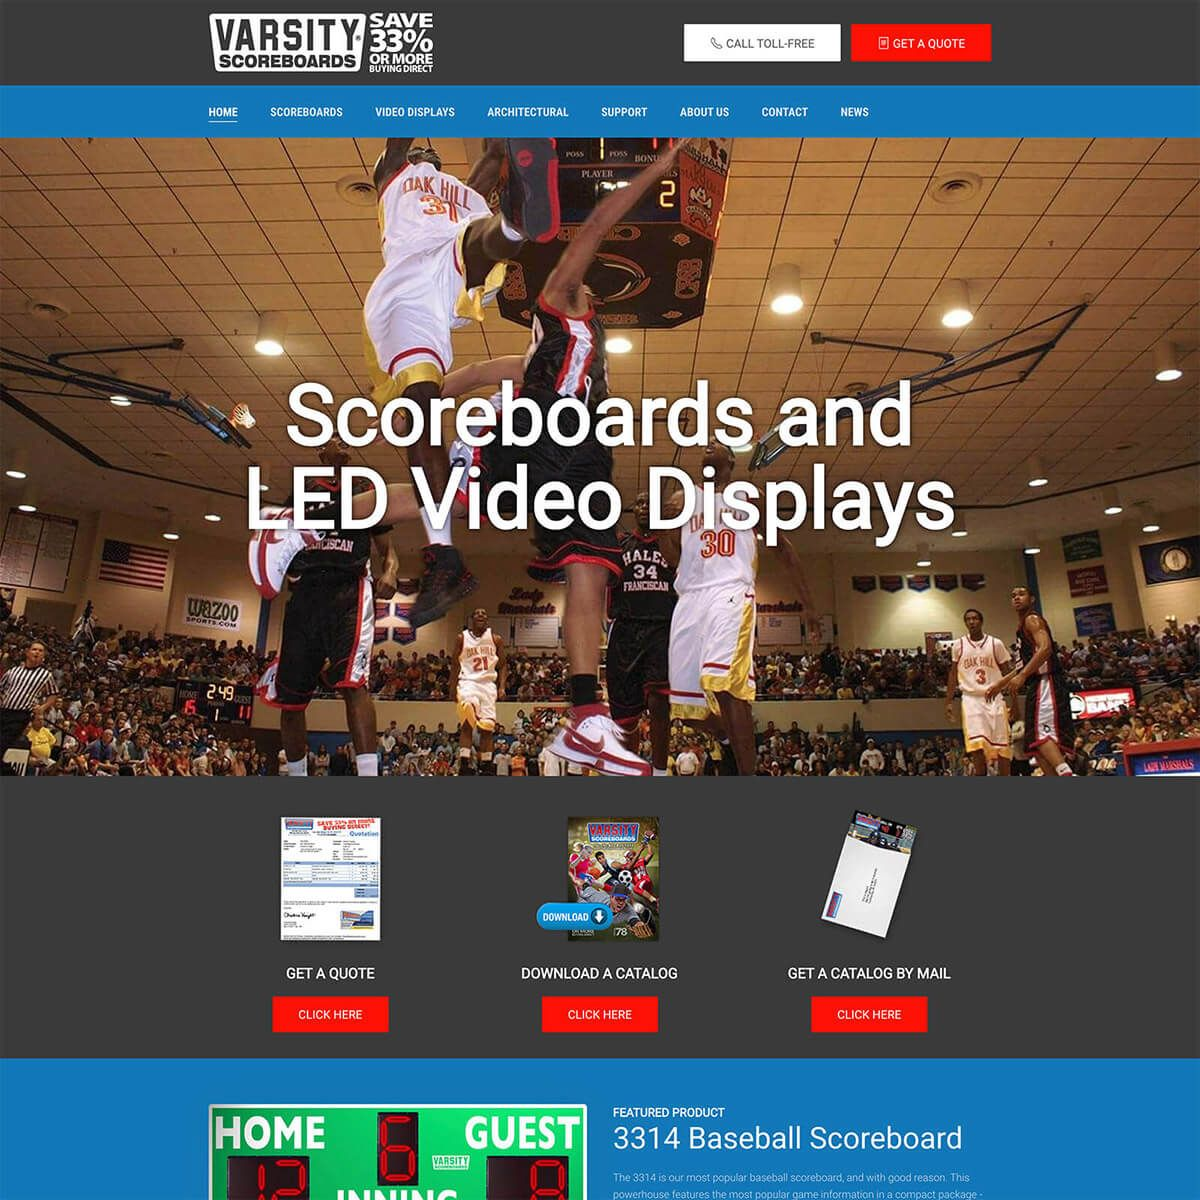 Varsity Scoreboards website by EyeSite Creations